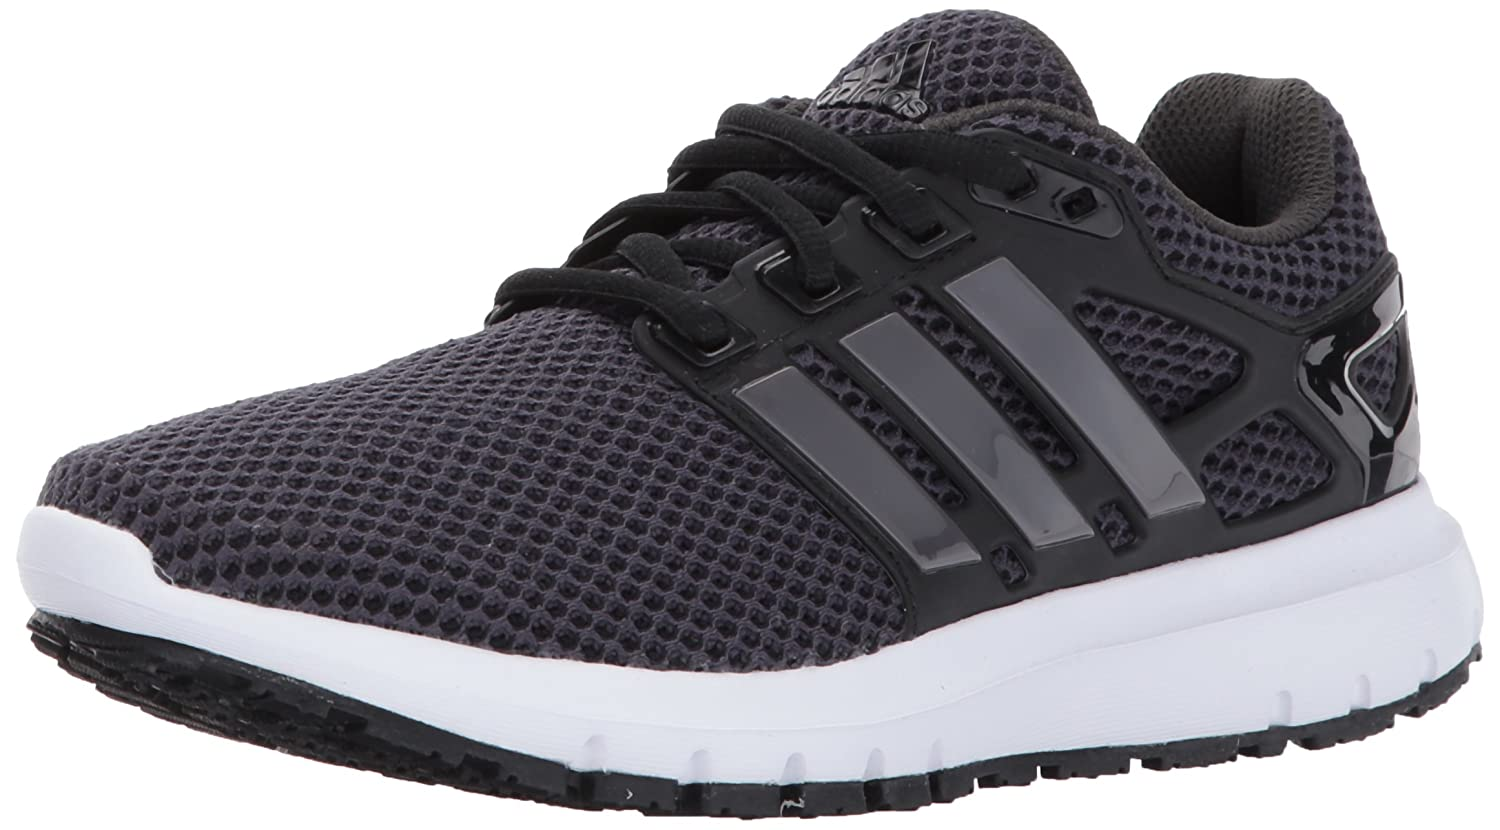 adidas Women's Energy Cloud W Running Shoe B01N9907LV 8.5 B(M) US|Utility Black/Trace Grey/Black